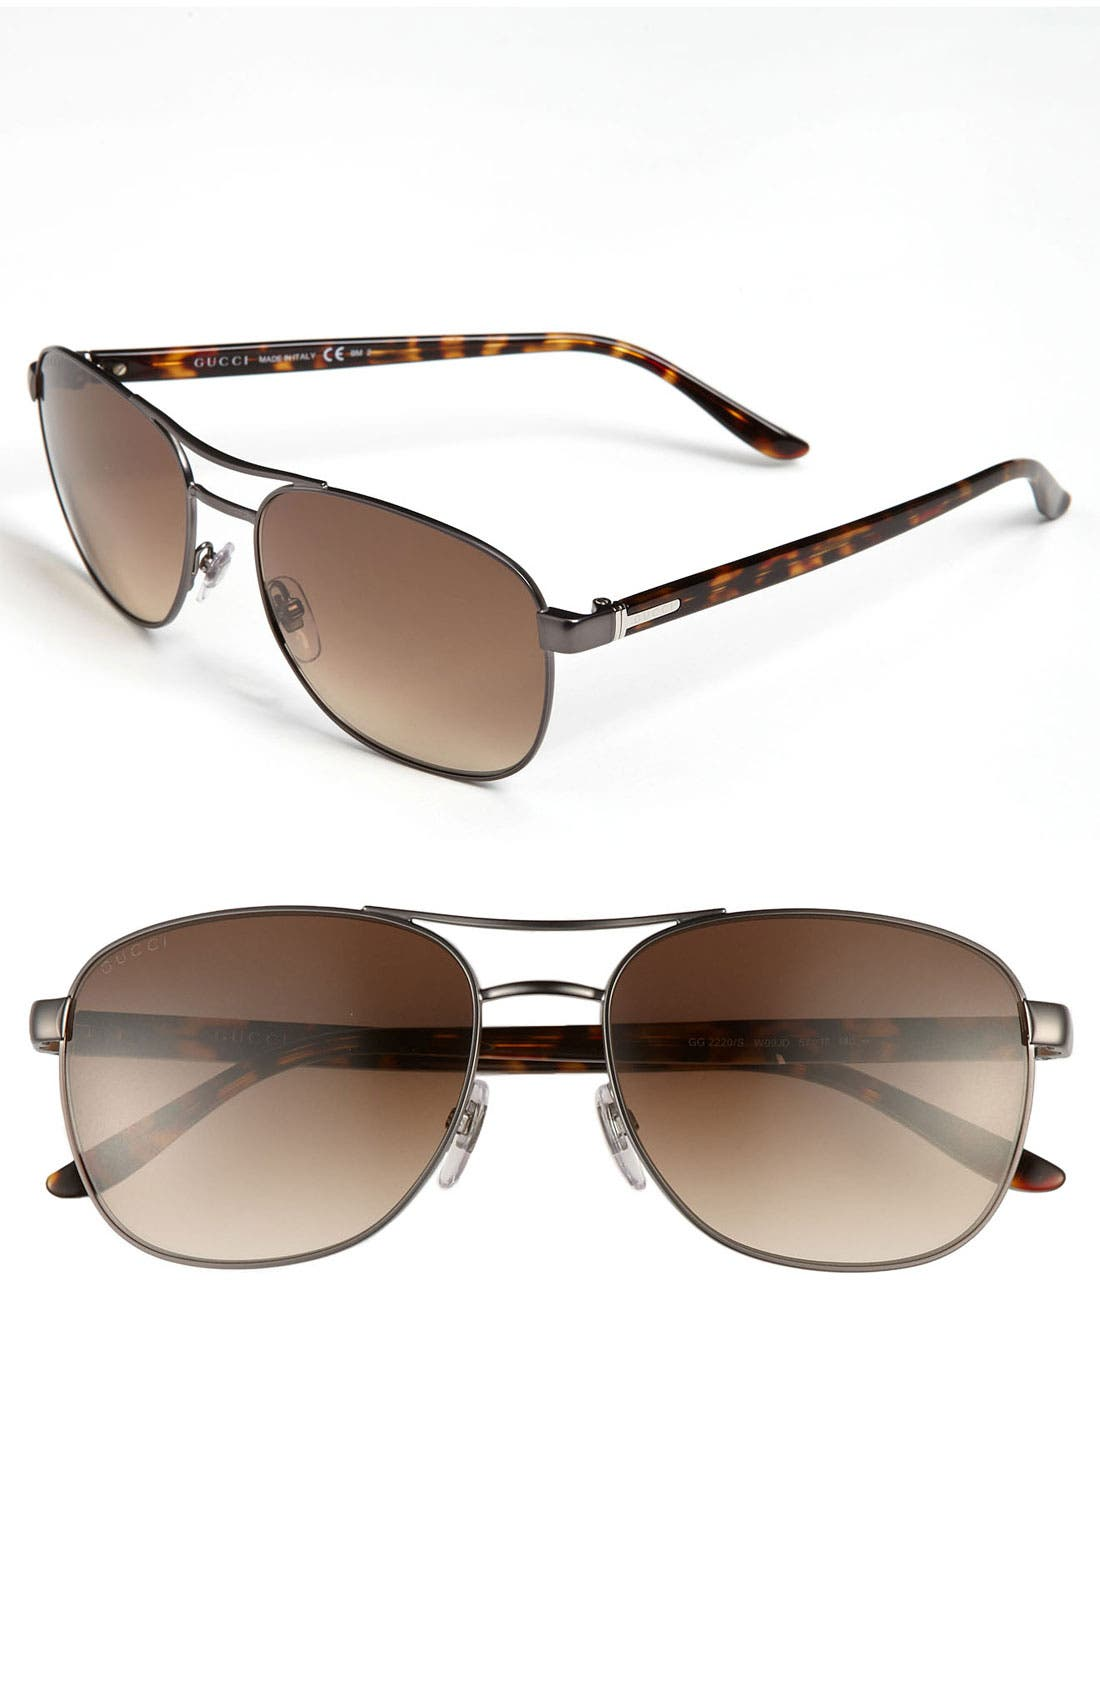 Main Image - Gucci 'Caravan' 57mm Aviator Sunglasses